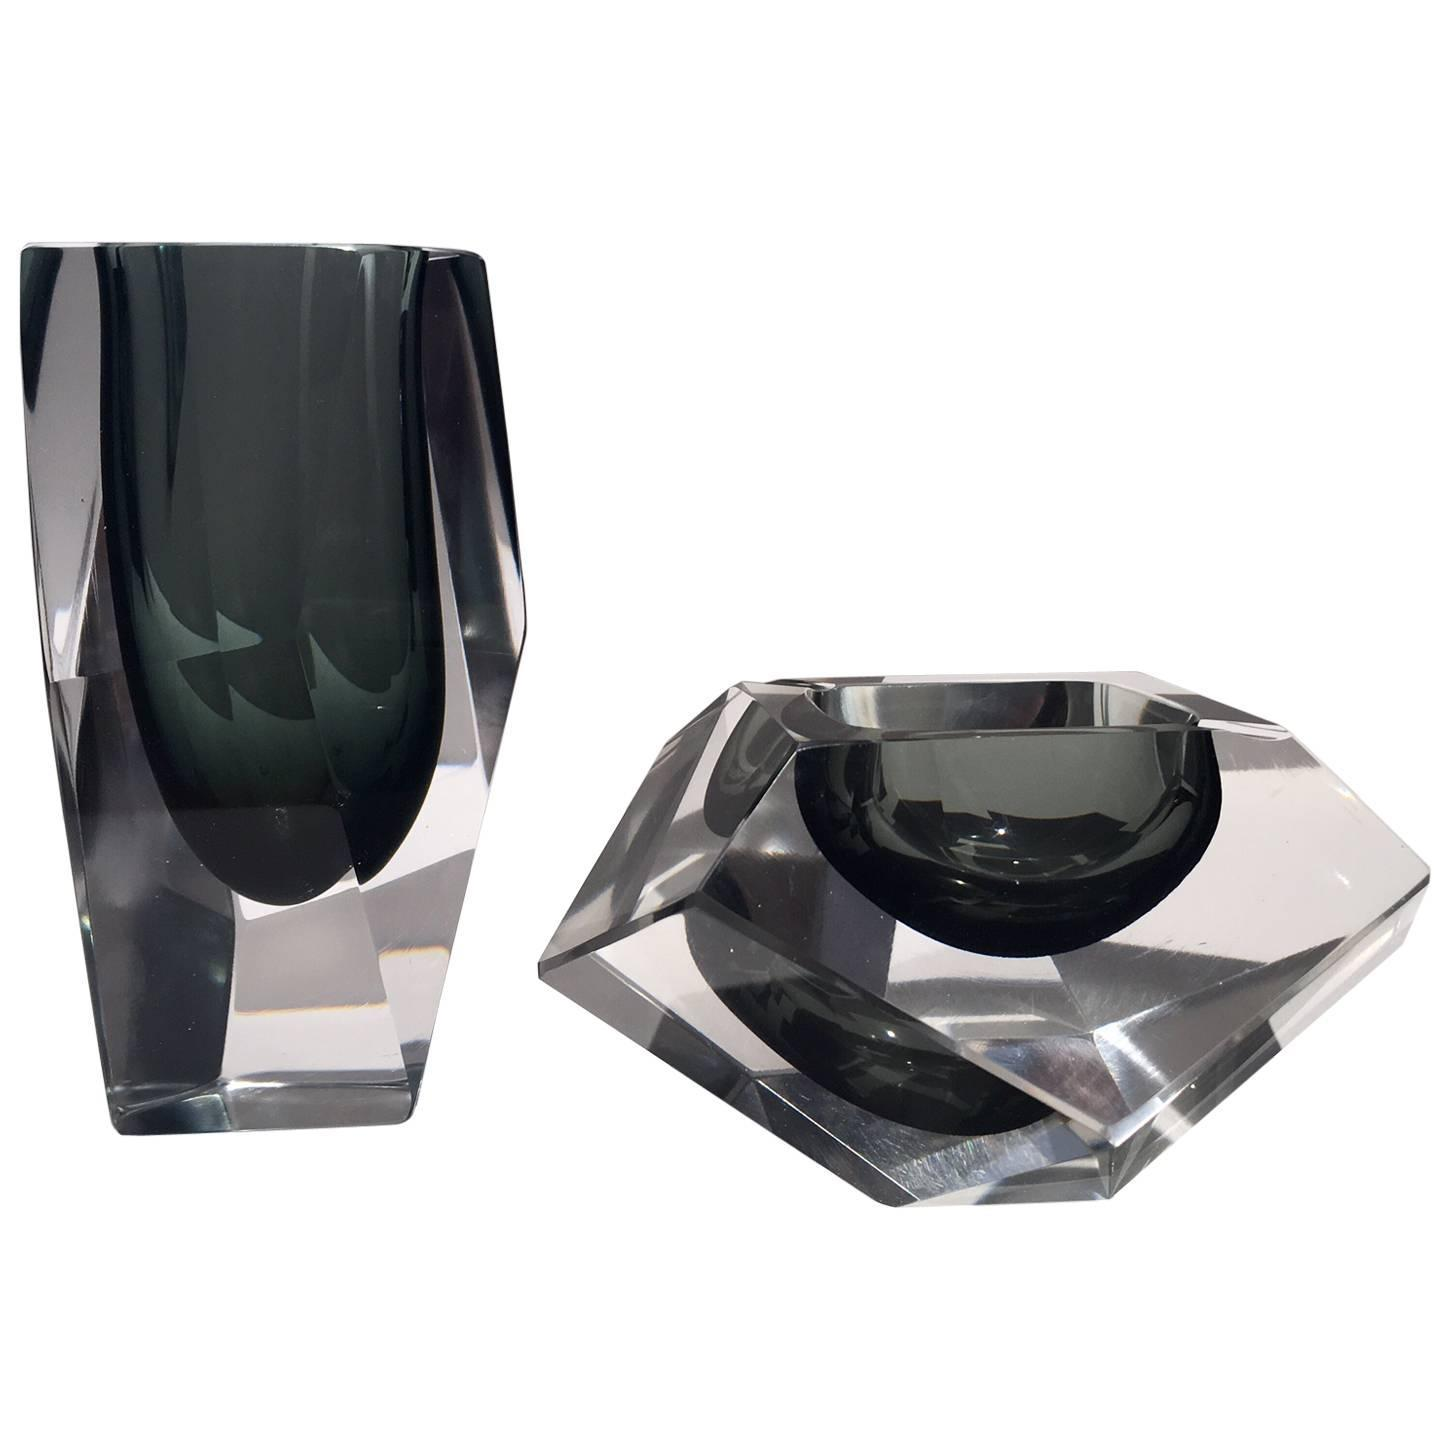 Flavio poli murano glass vase and ashtray set for sale at 1stdibs reviewsmspy